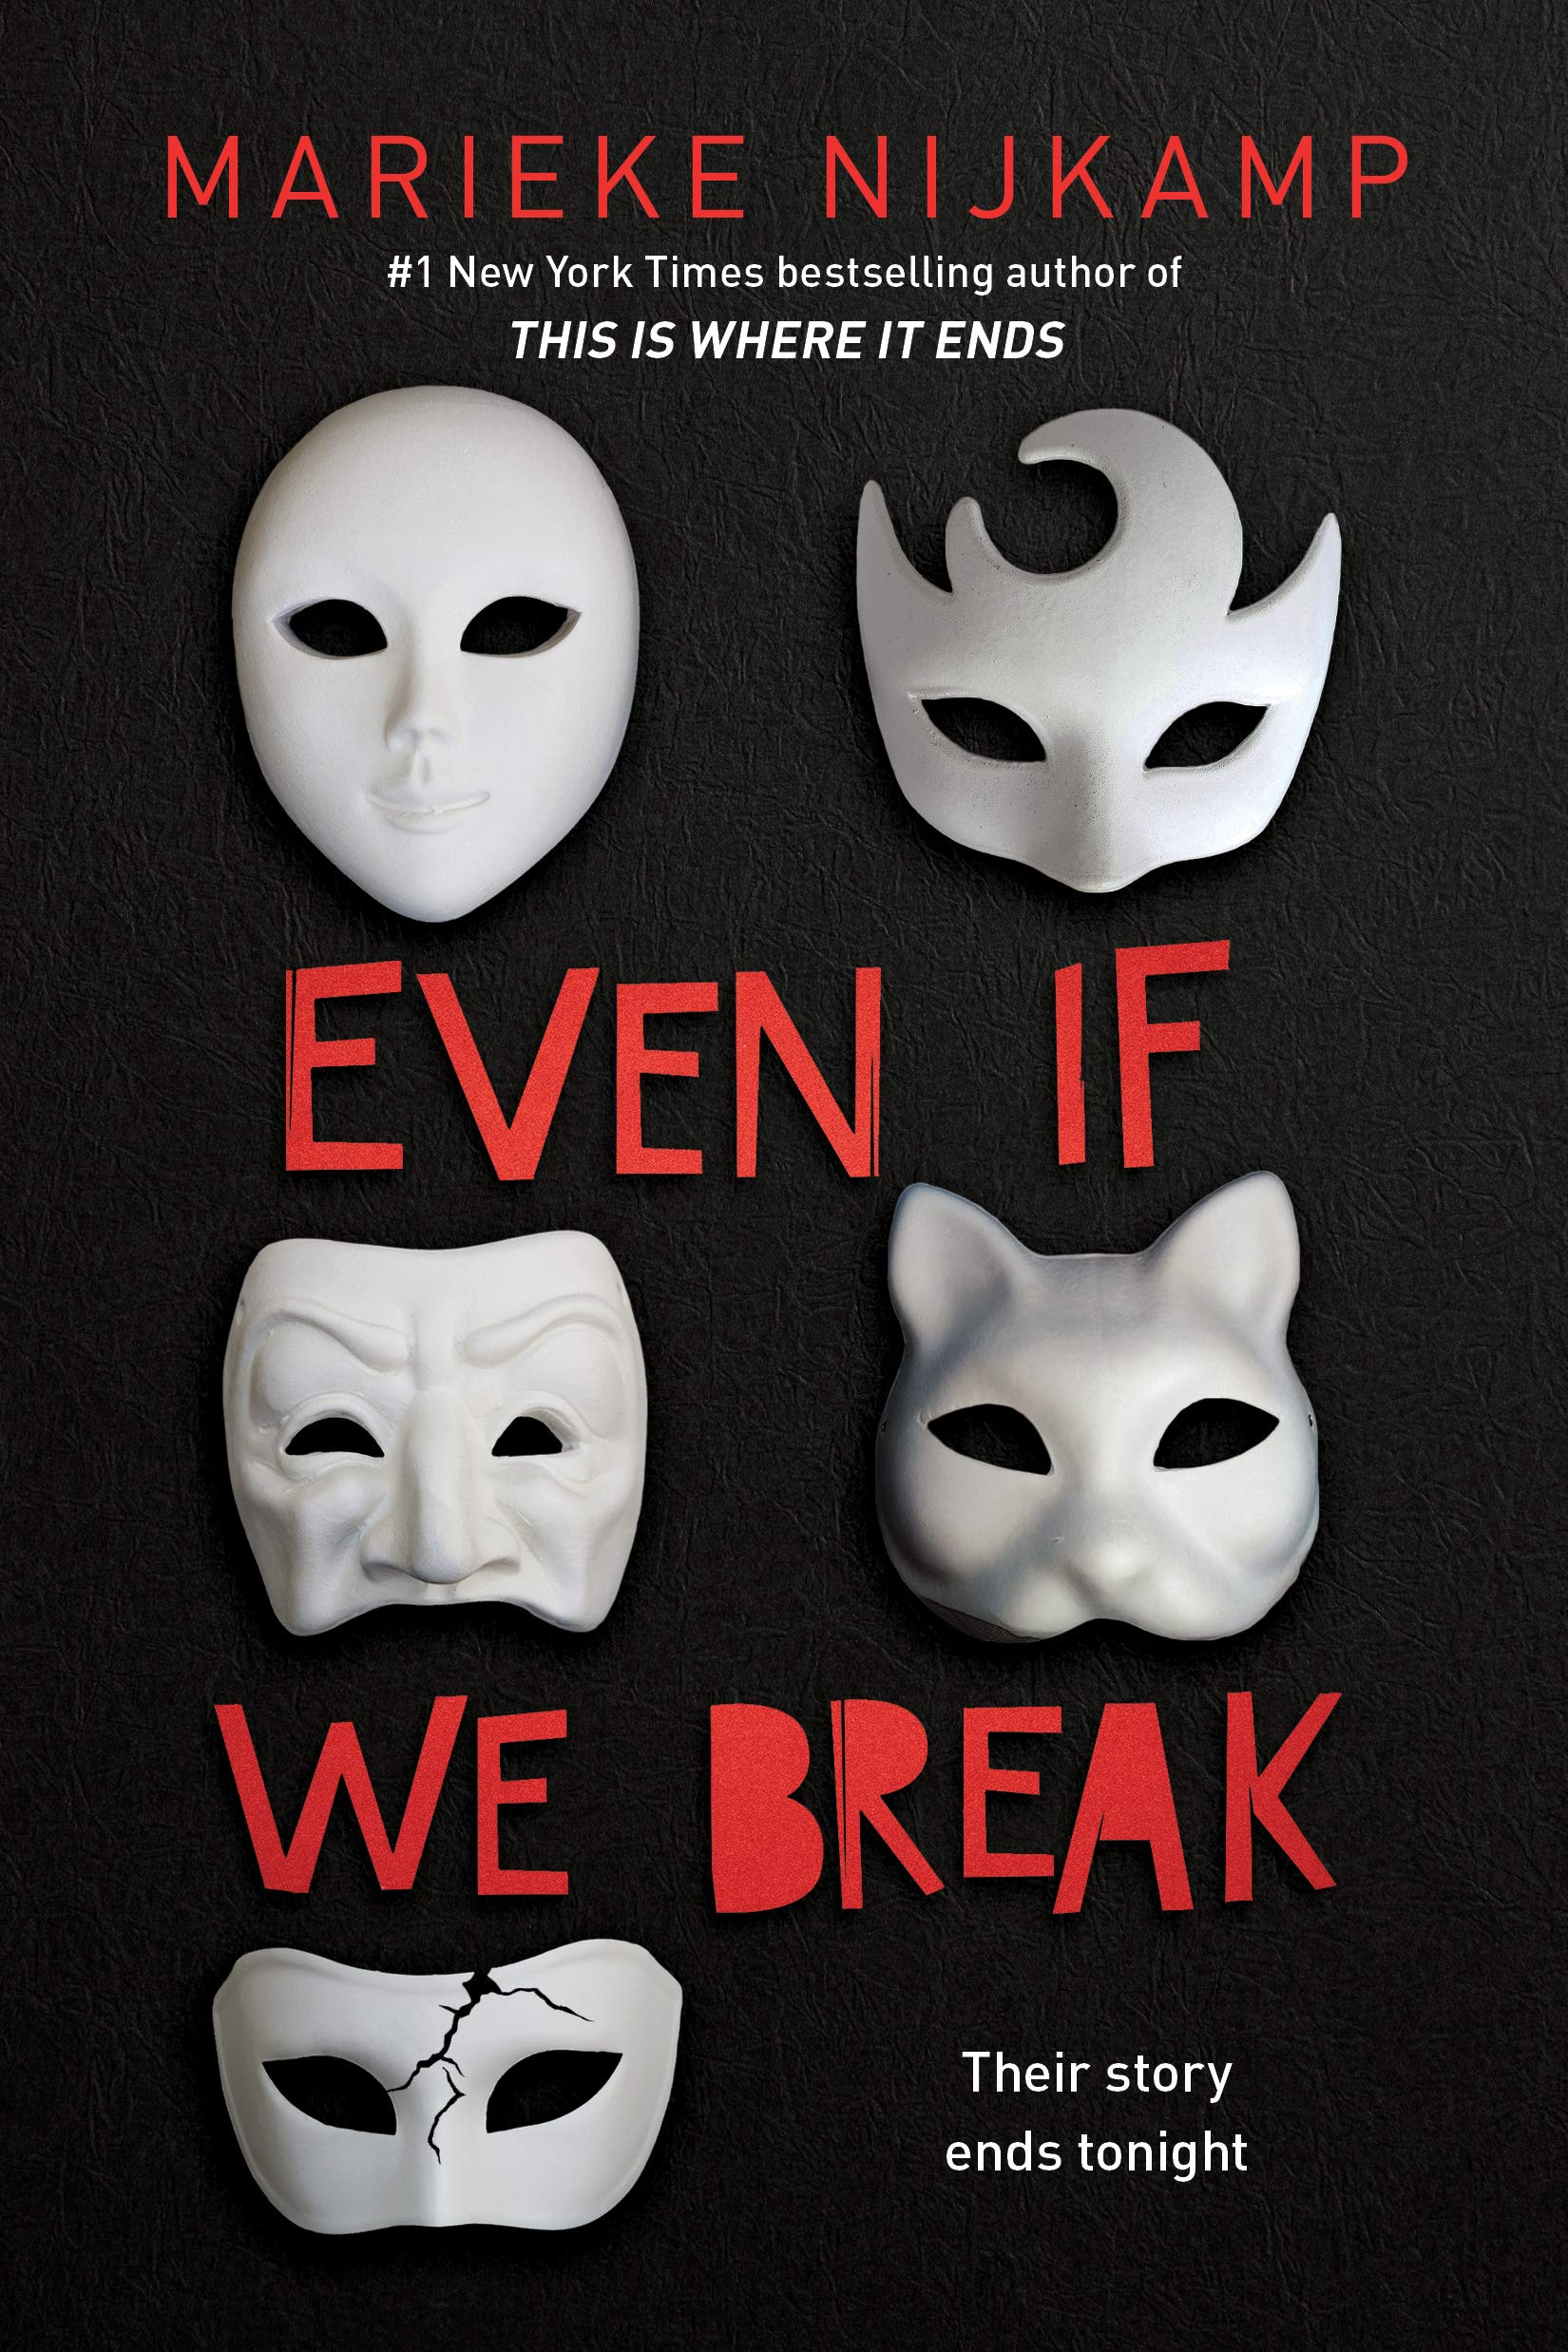 https://www.goodreads.com/book/show/51210722-even-if-we-break